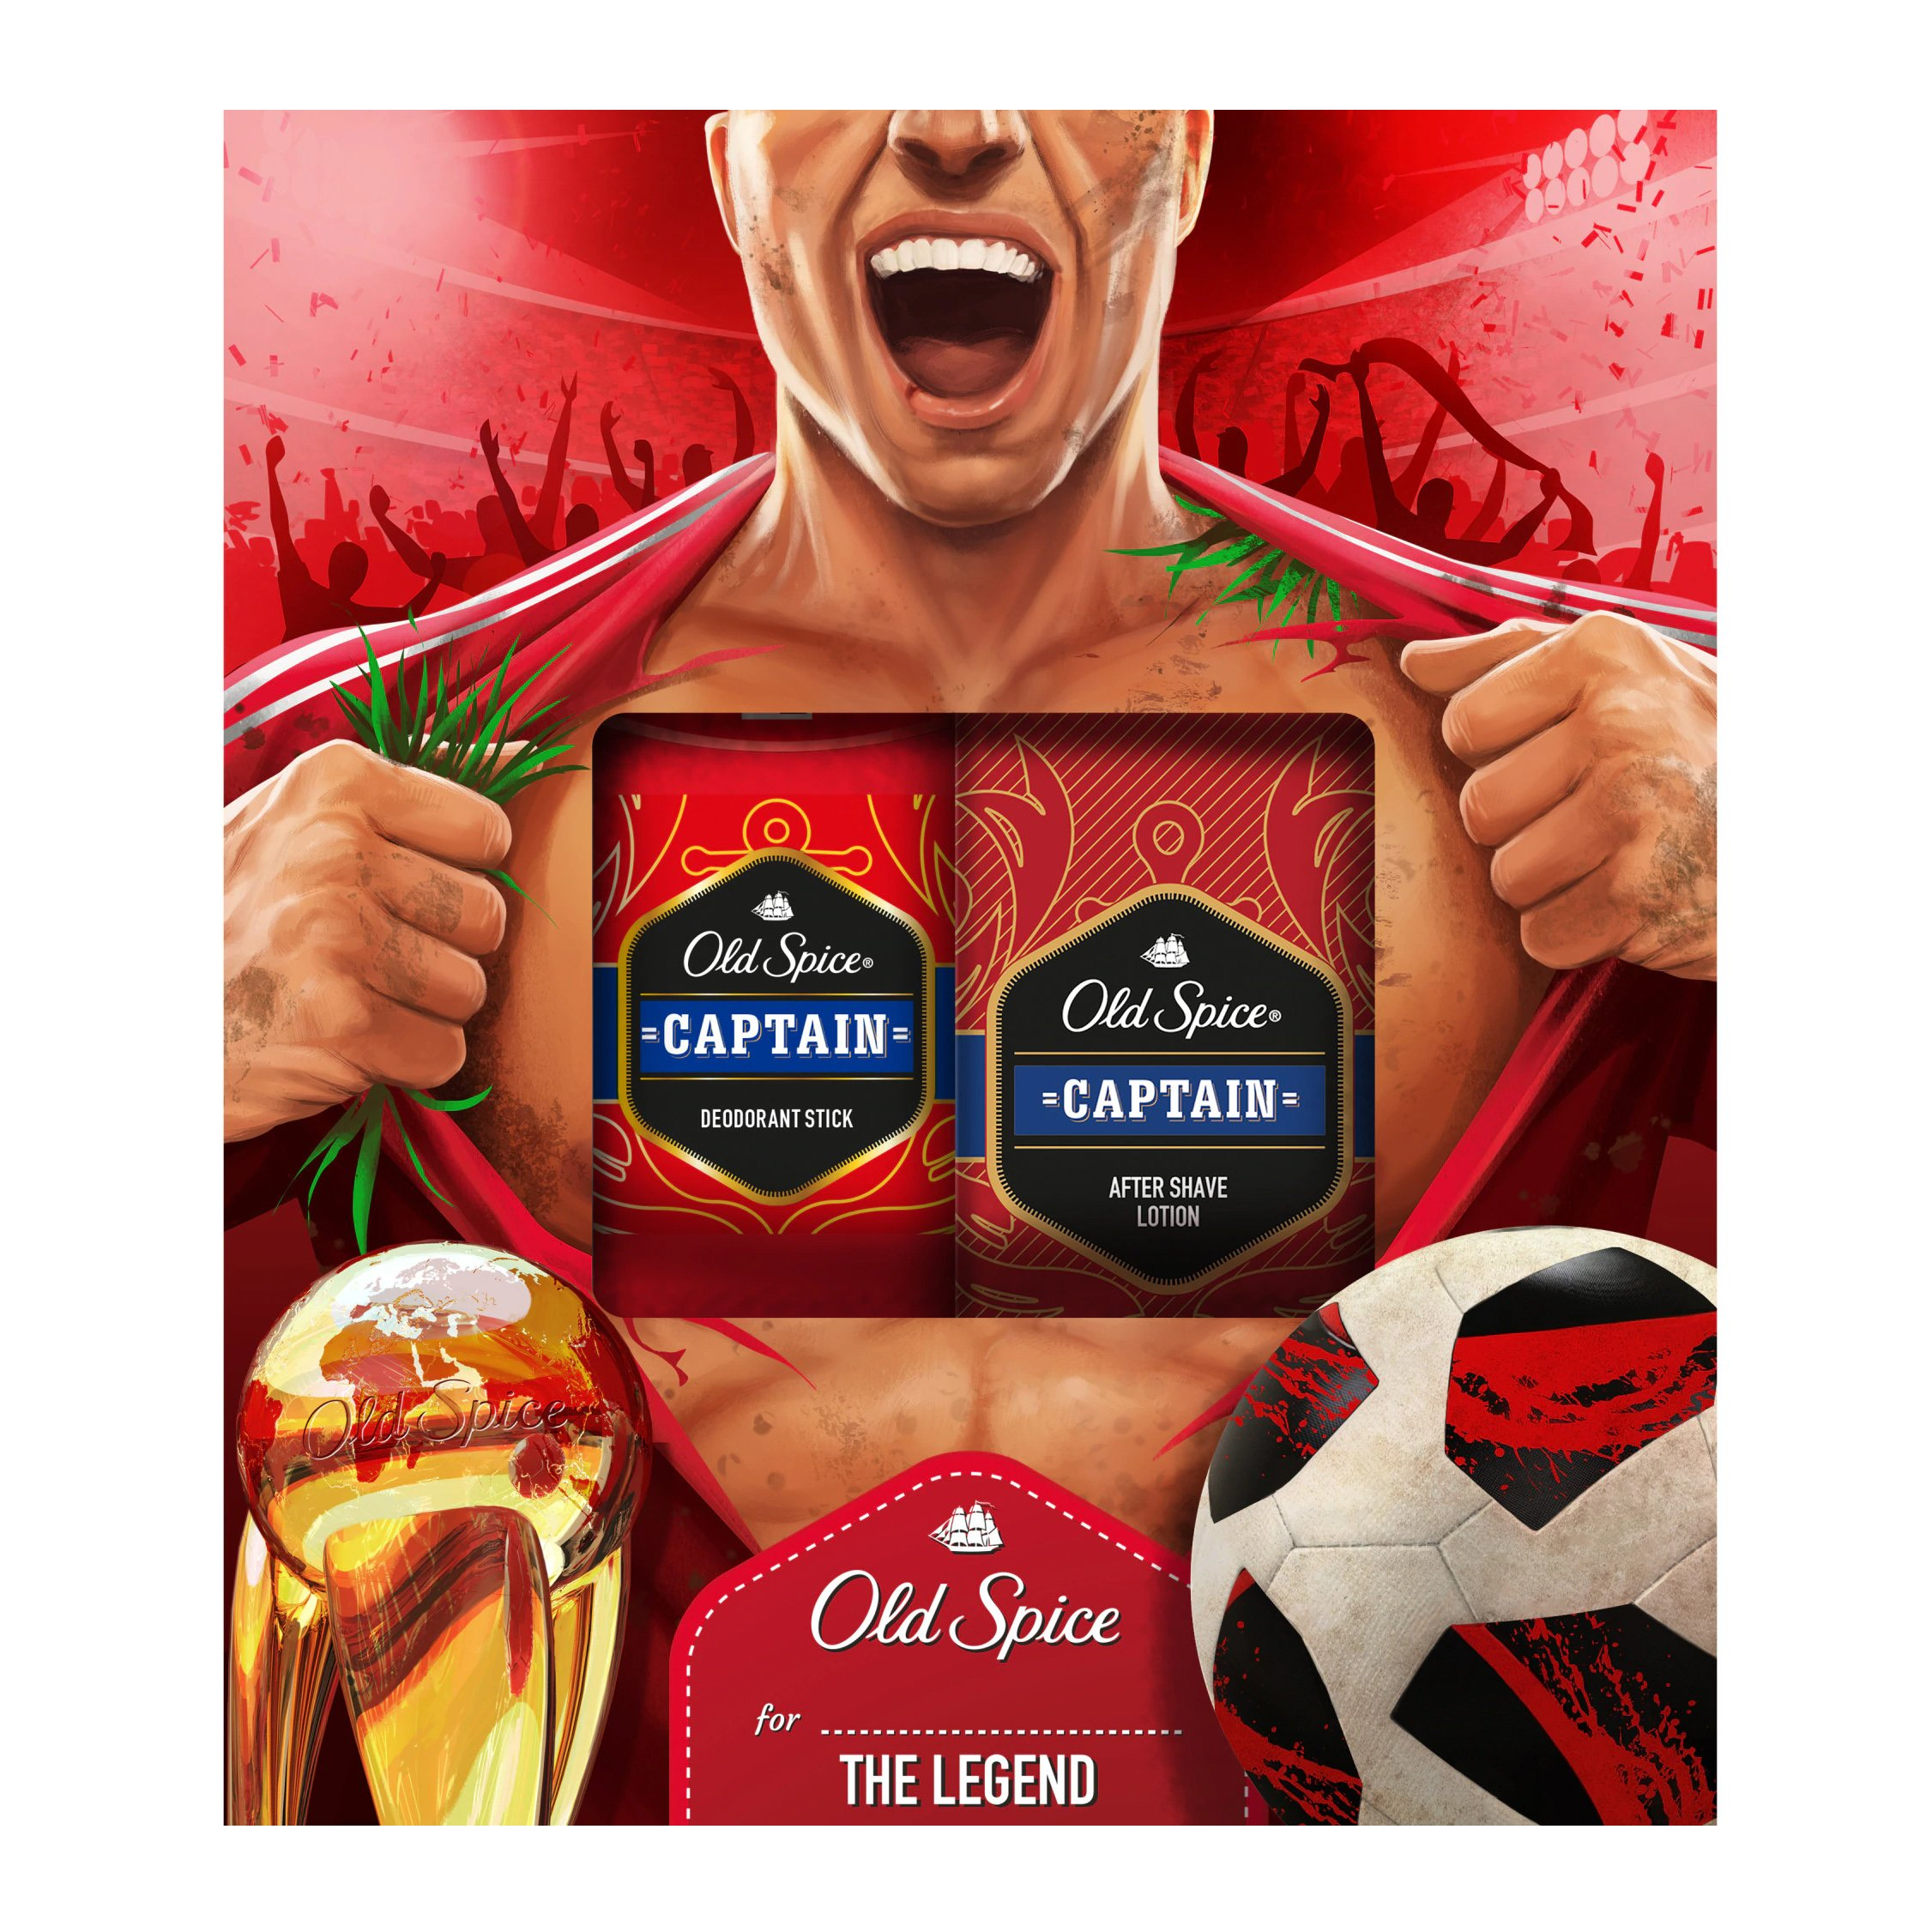 Old Spice Gift Box Captain Football Deodorant Stick 50ml & Captain After Shave Lotion 100ml